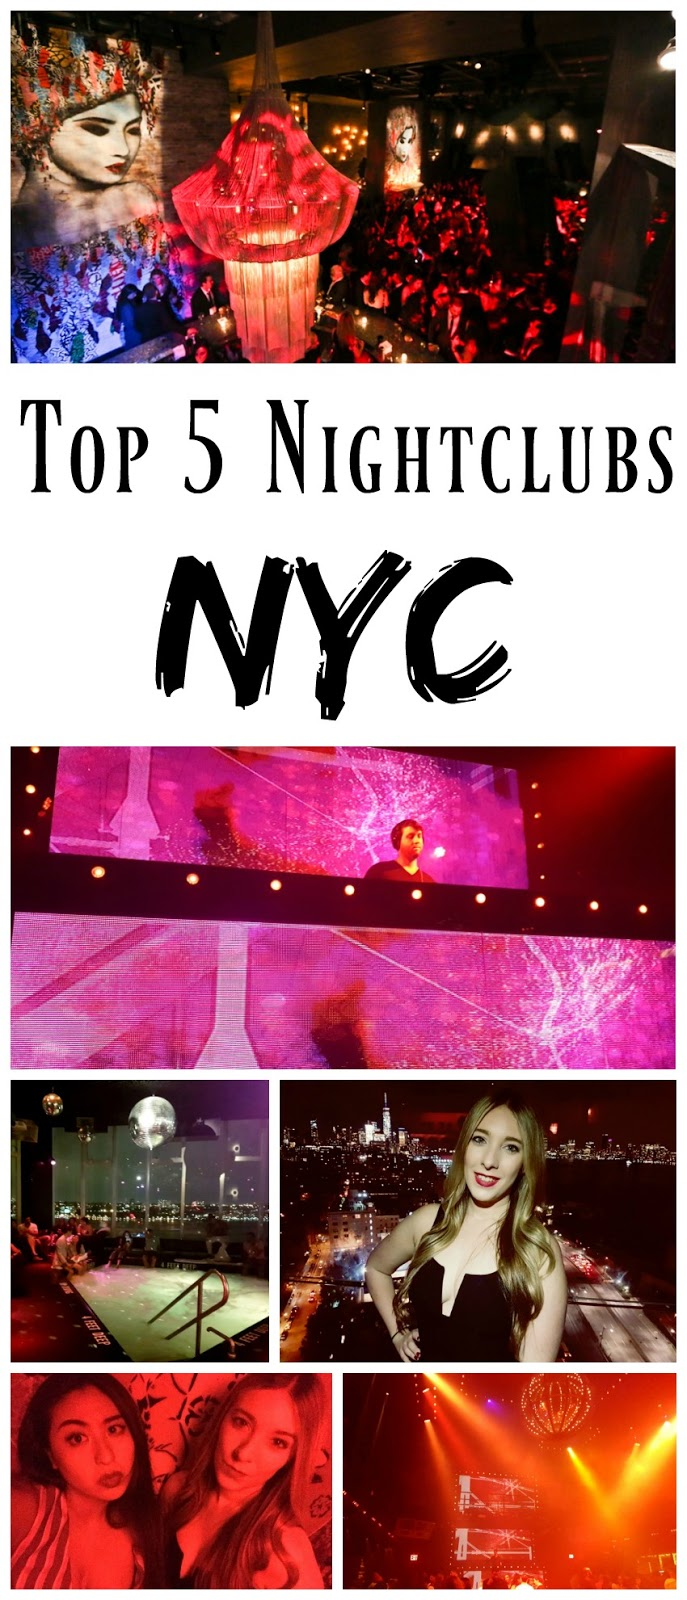 My Top 5 Nightclubs In NYC.